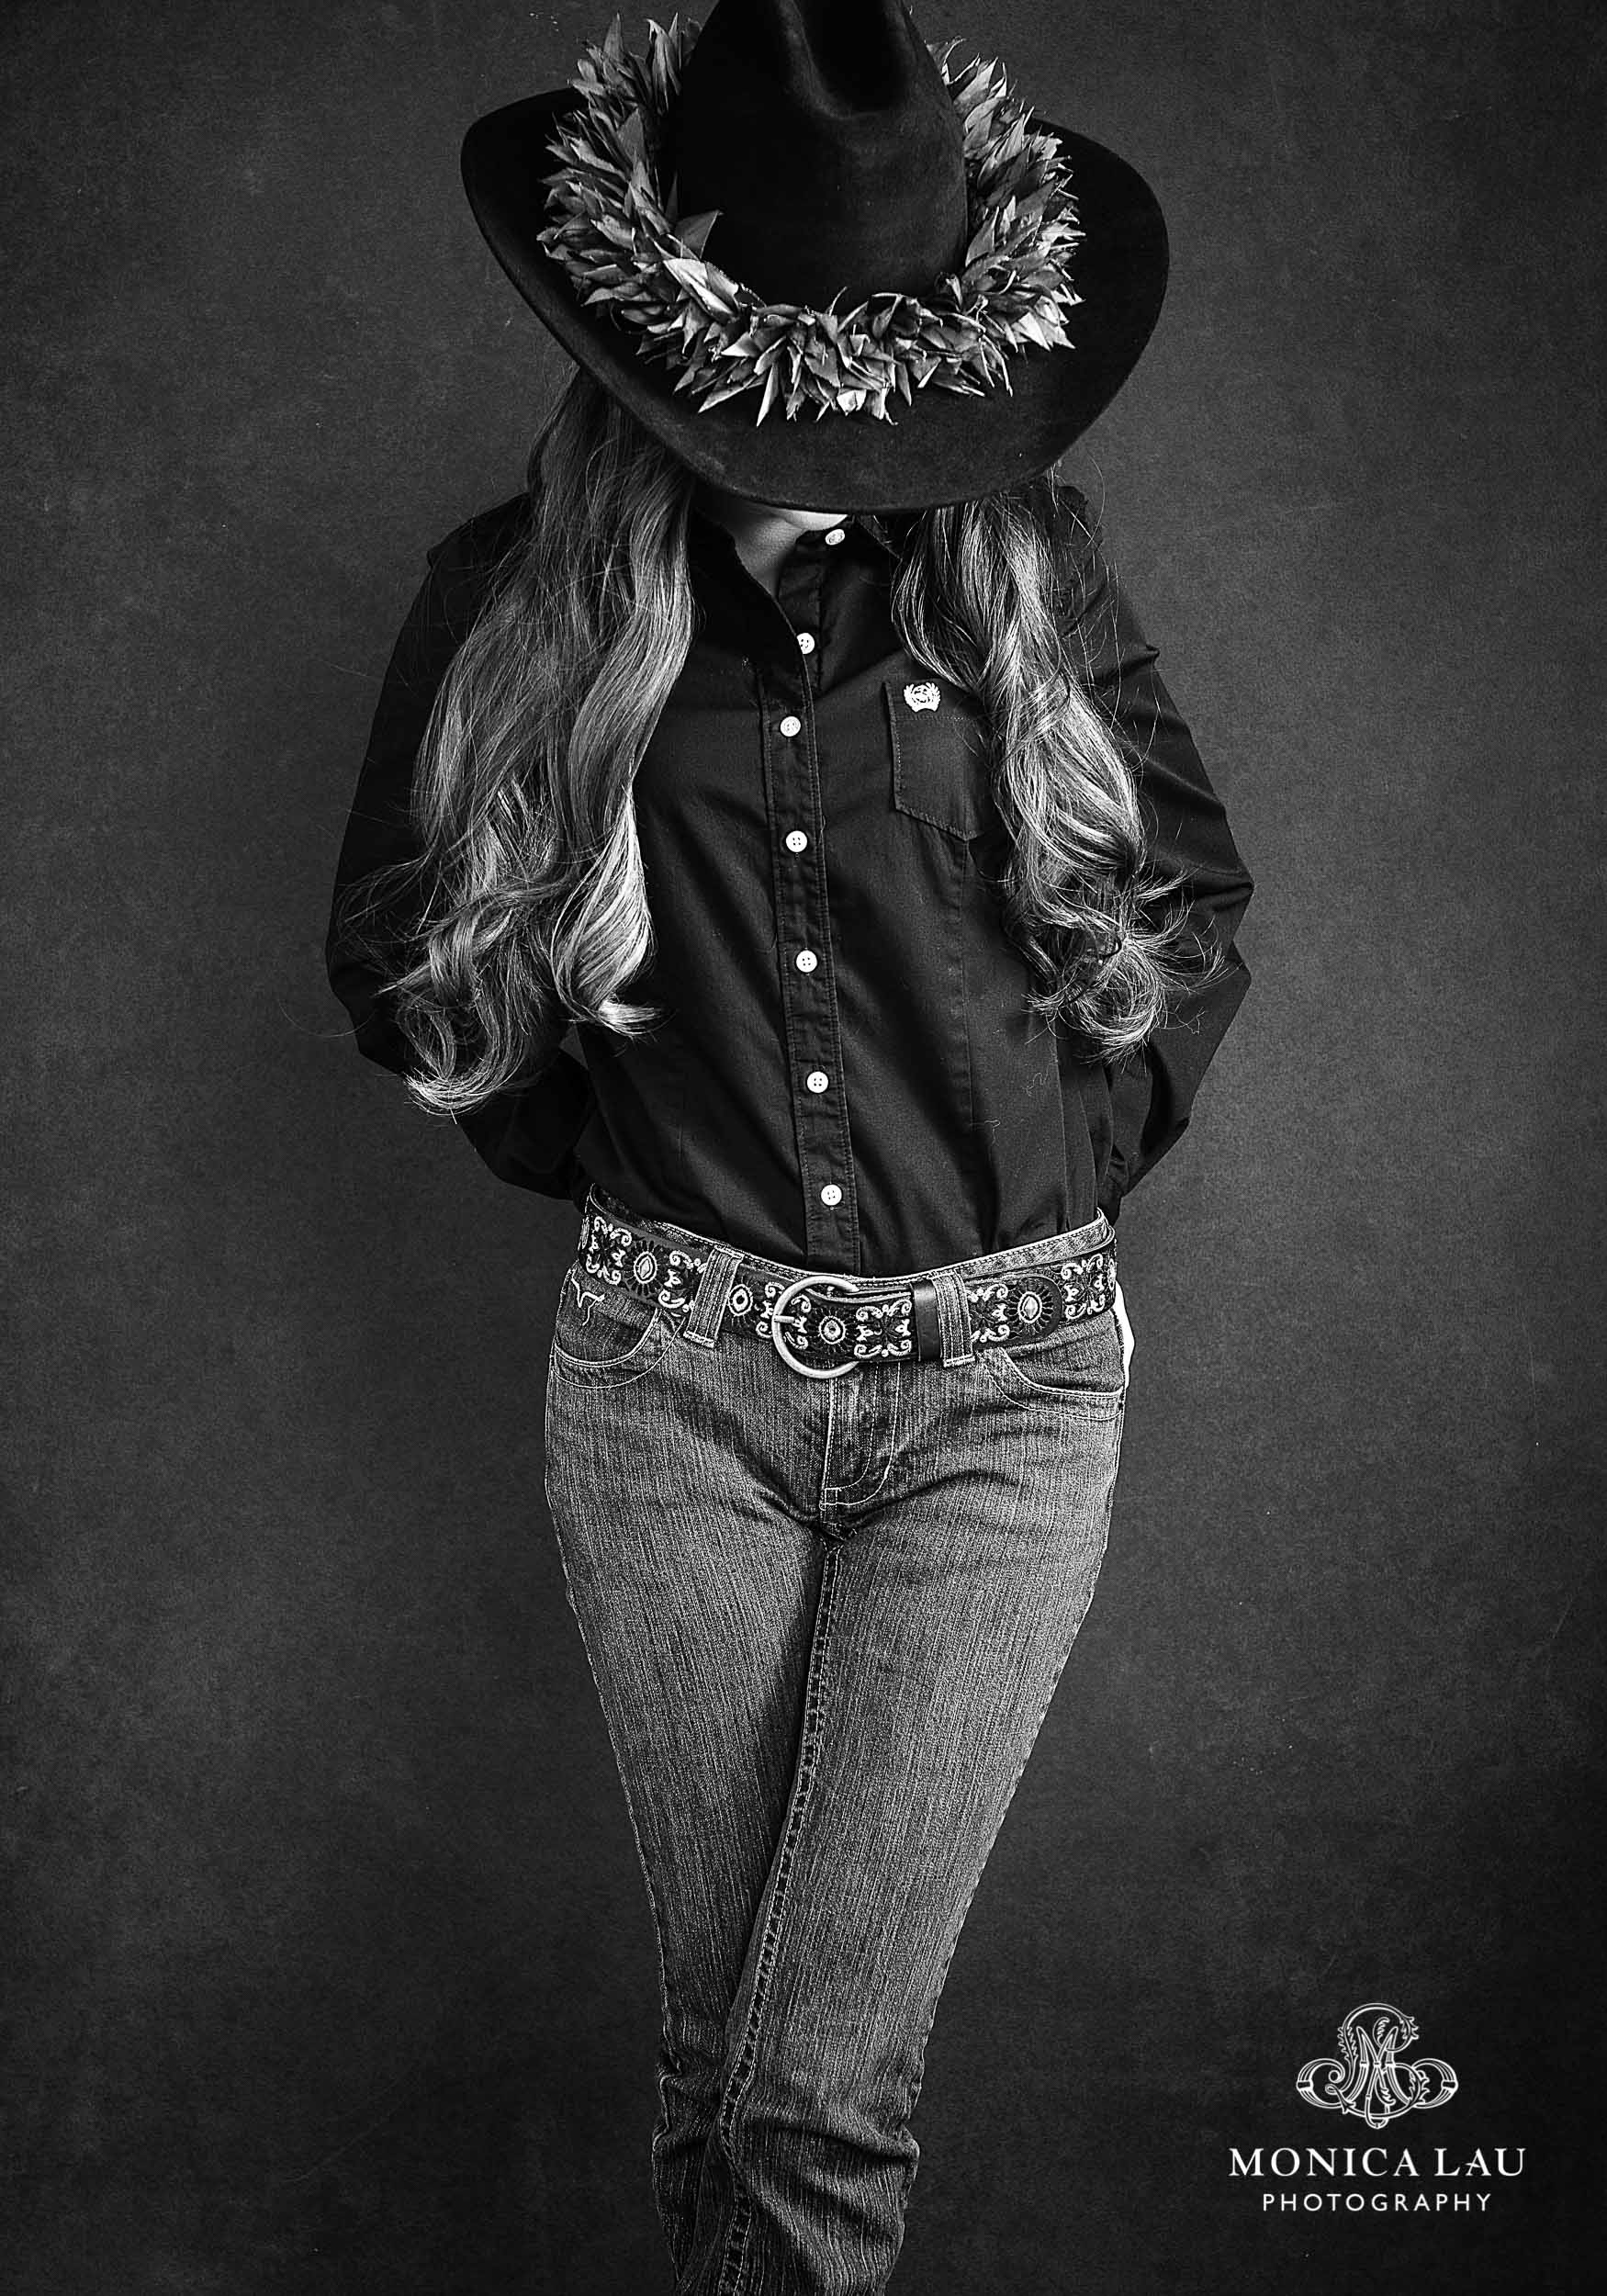 19MonicaLauPhotography-ShelbyWallenCowgirlPortraits0556.jpg